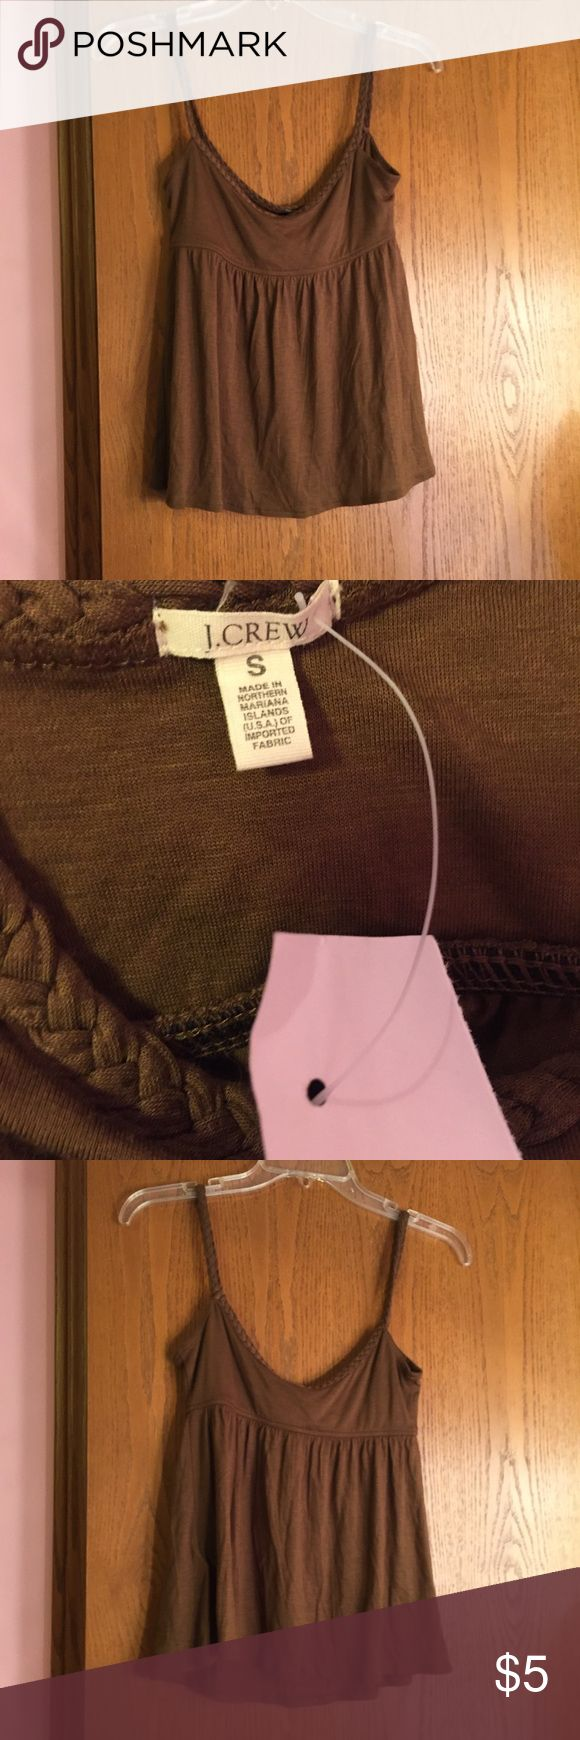 Brown cami New with tags J. Crew Tops Tank Tops